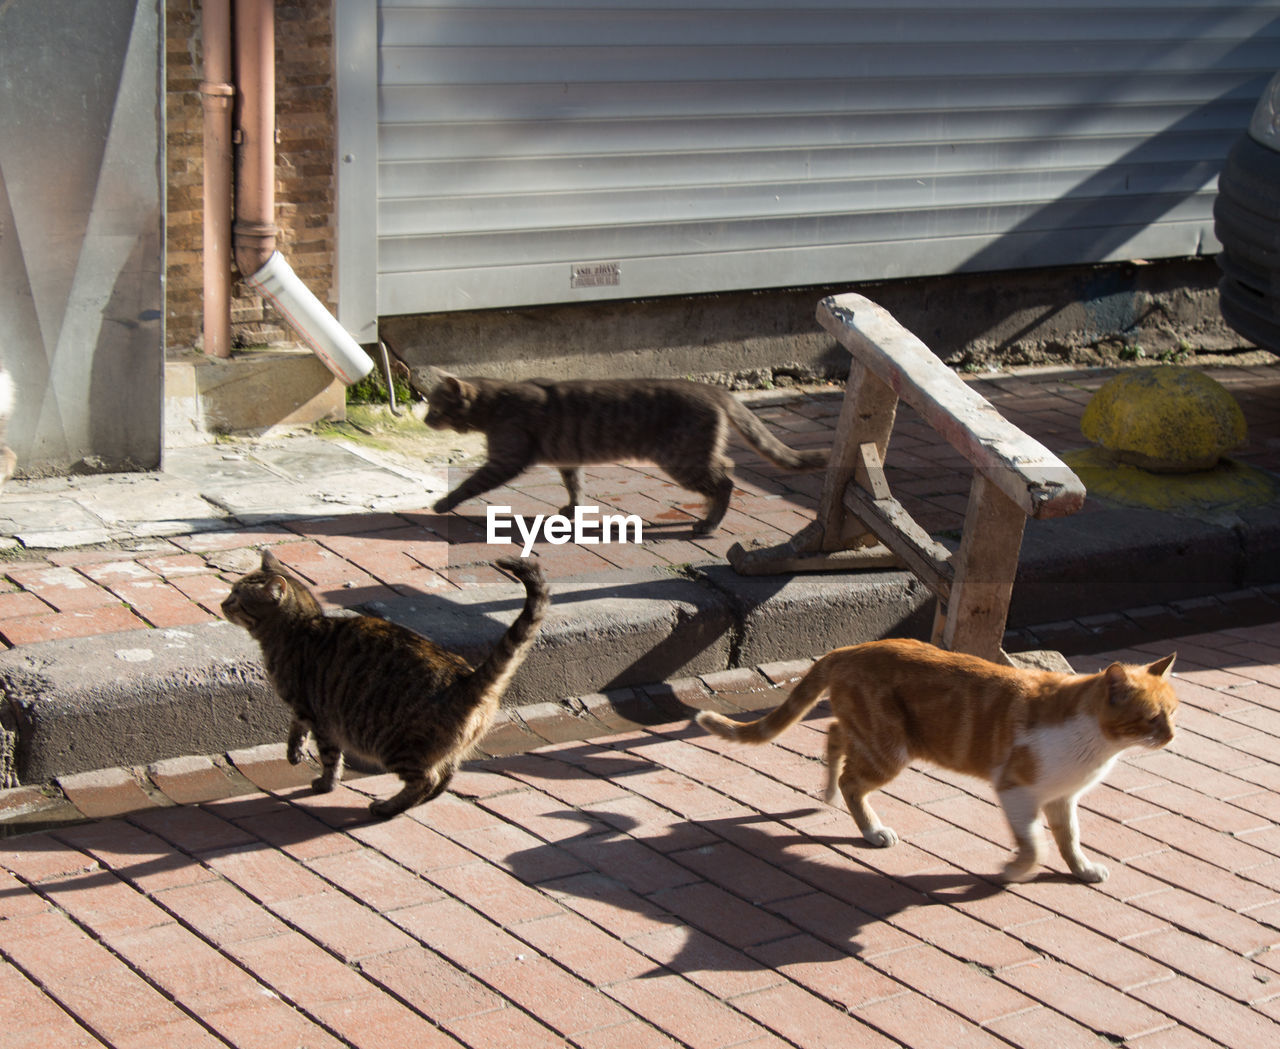 group of animals, animal, mammal, animal themes, domestic animals, vertebrate, sunlight, domestic, no people, pets, day, shadow, architecture, nature, built structure, footpath, feline, outdoors, cat, full length, animal family